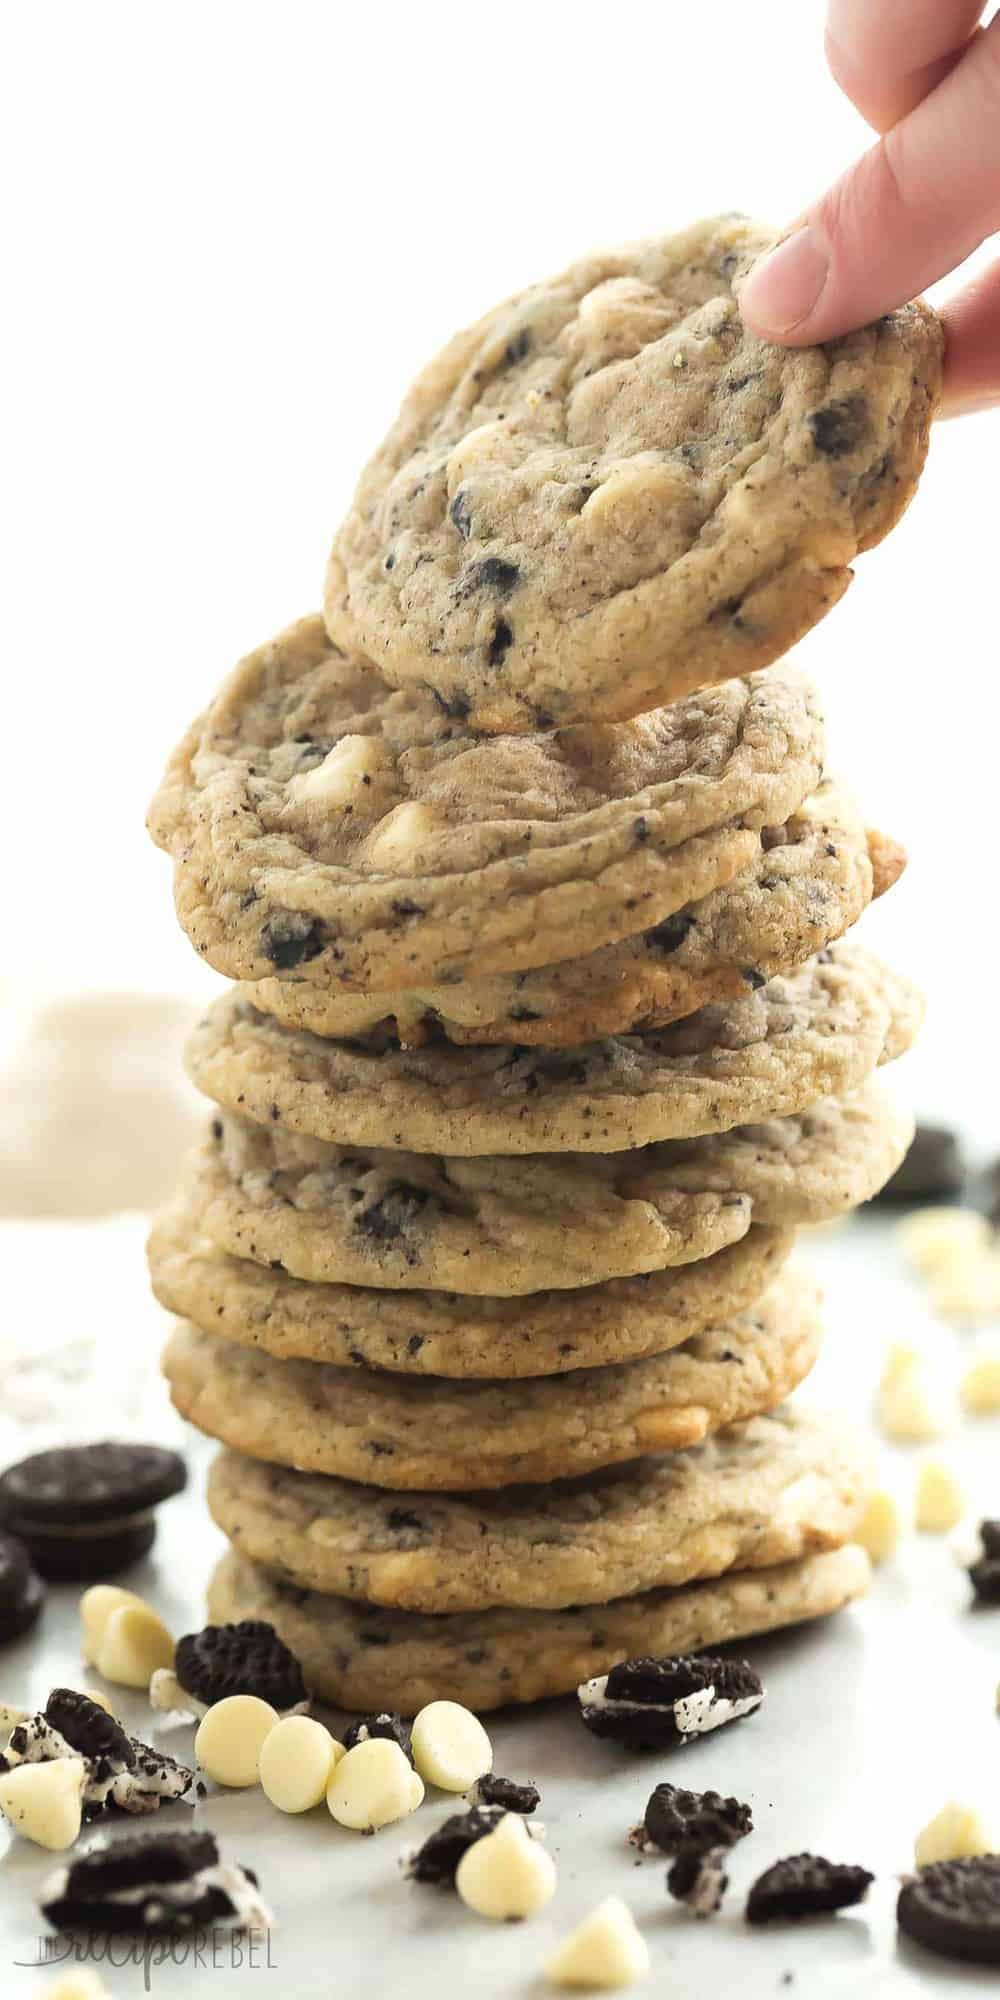 tall stack of cookies and cream cookies with white chocolate chips and crushed oreos on a white background